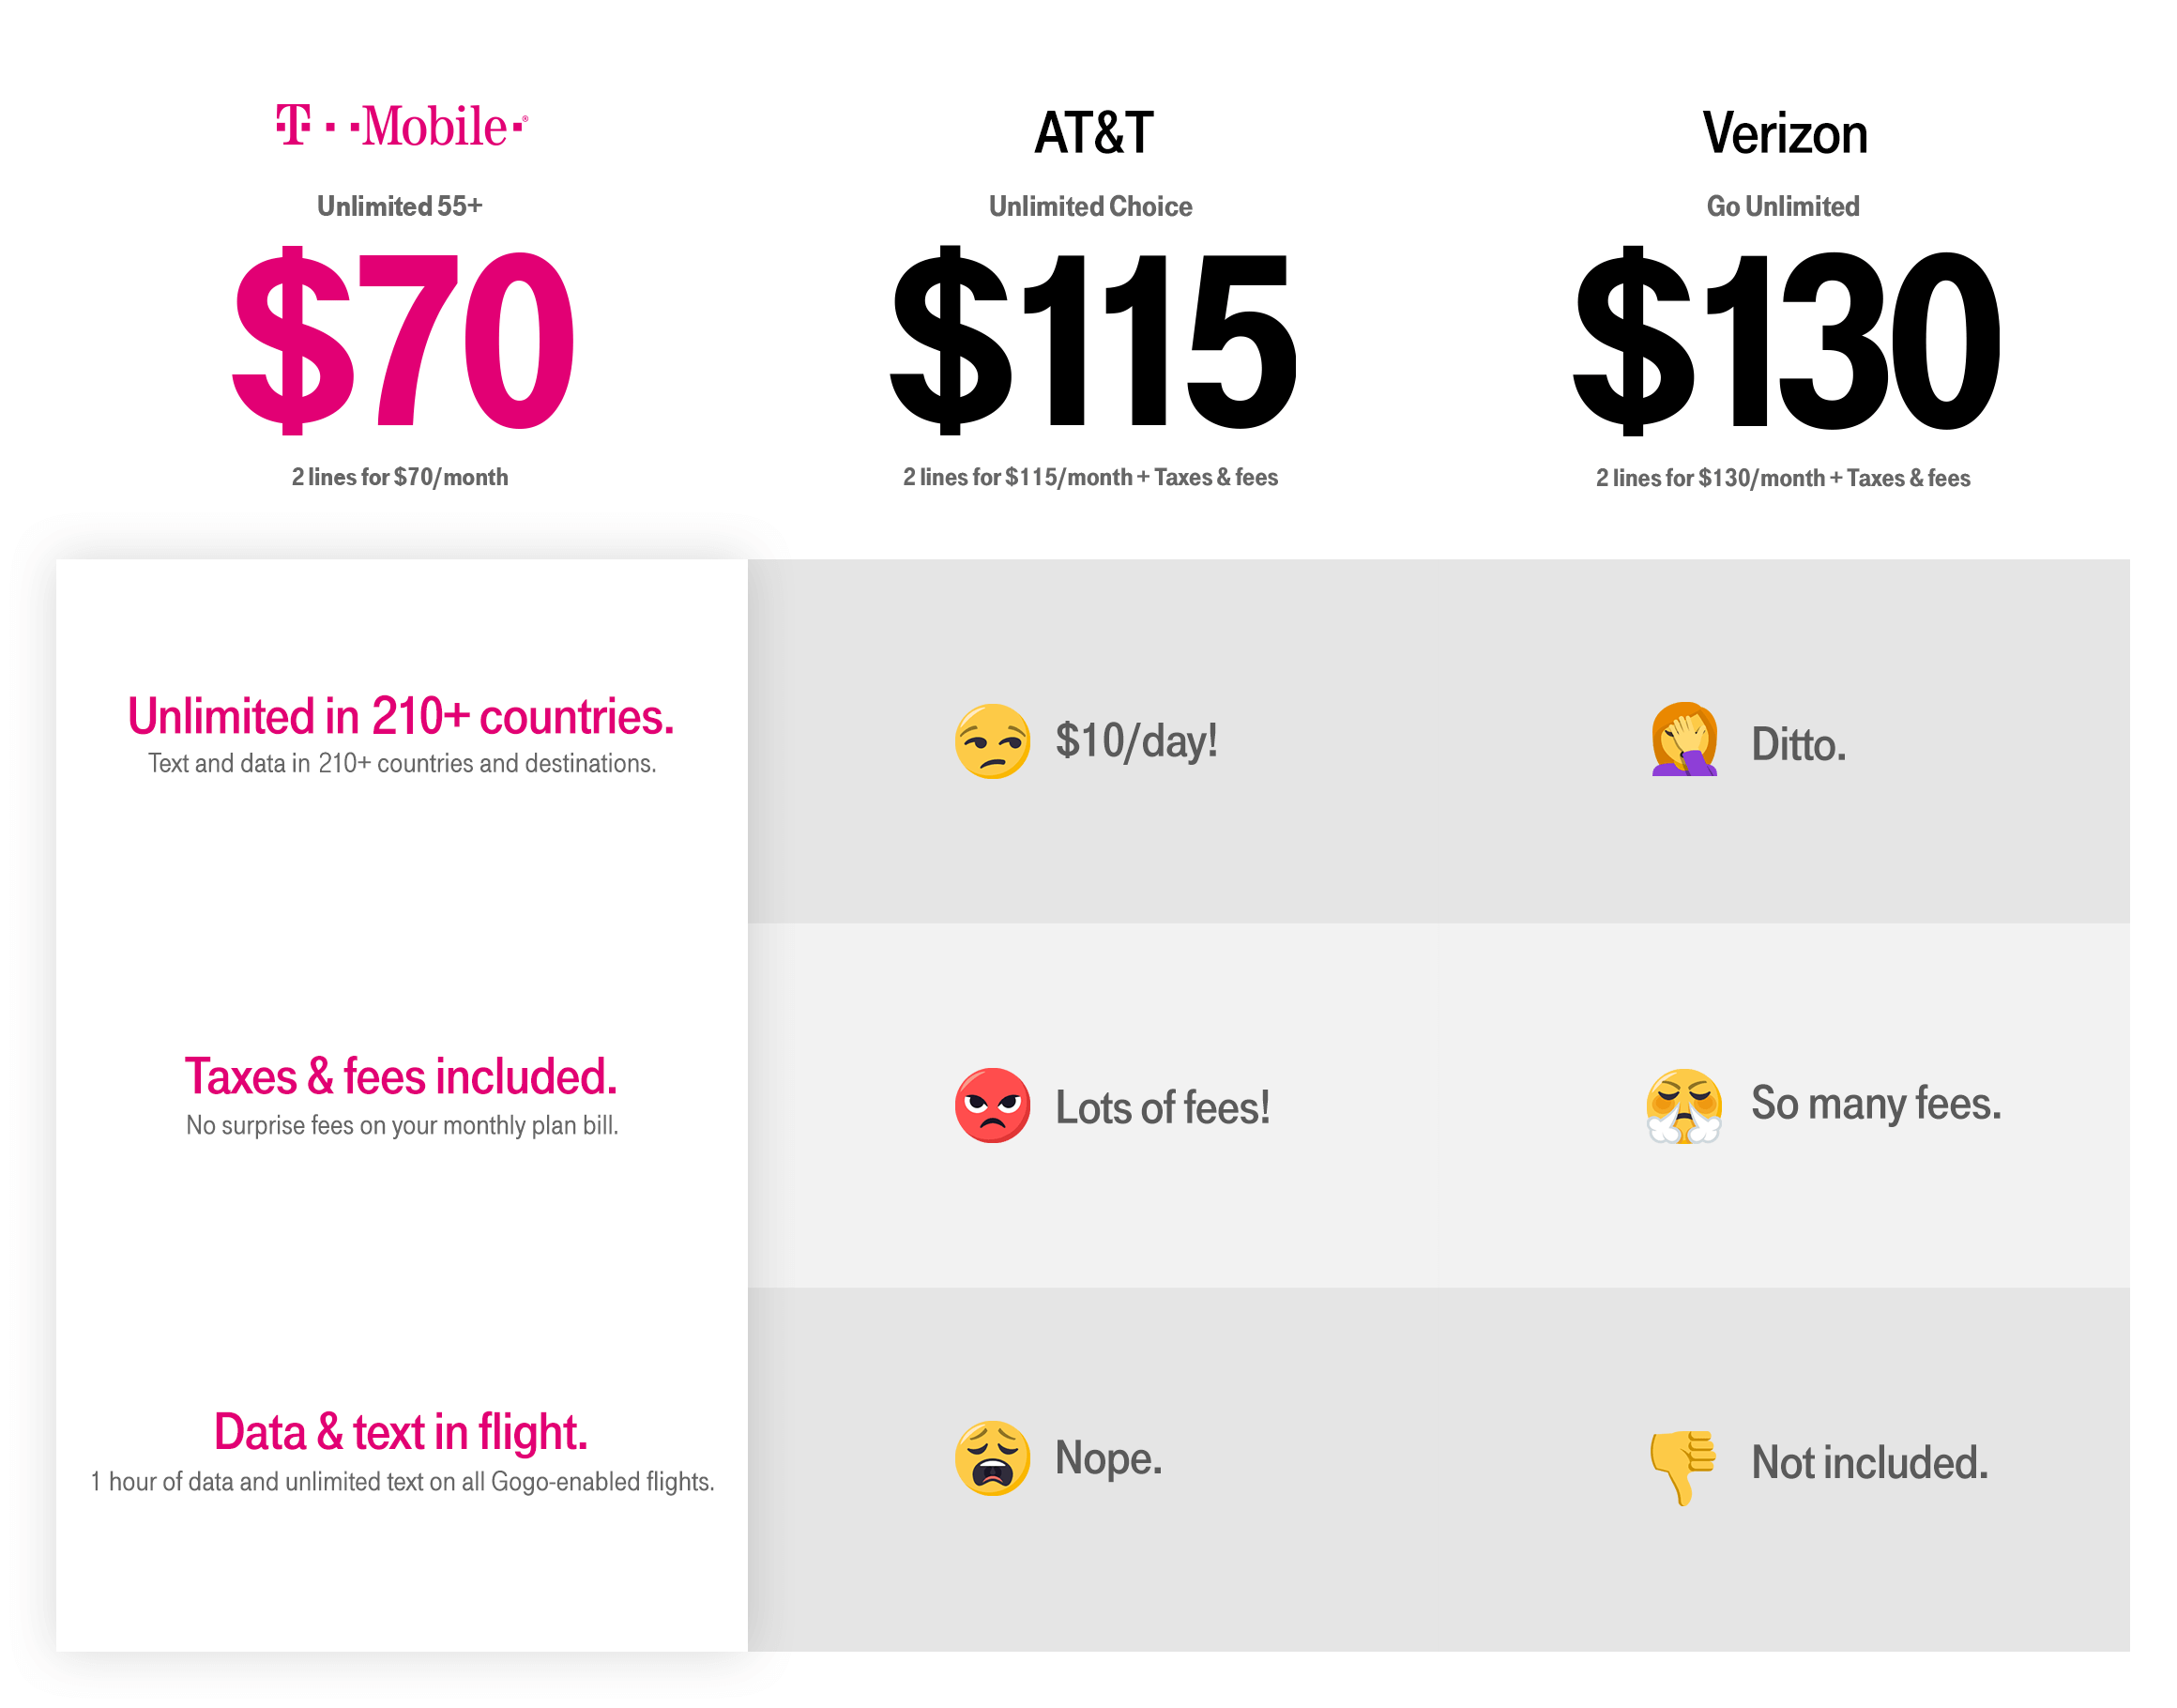 TMobile ONE Unlimited 55+ is only 70 per month for two